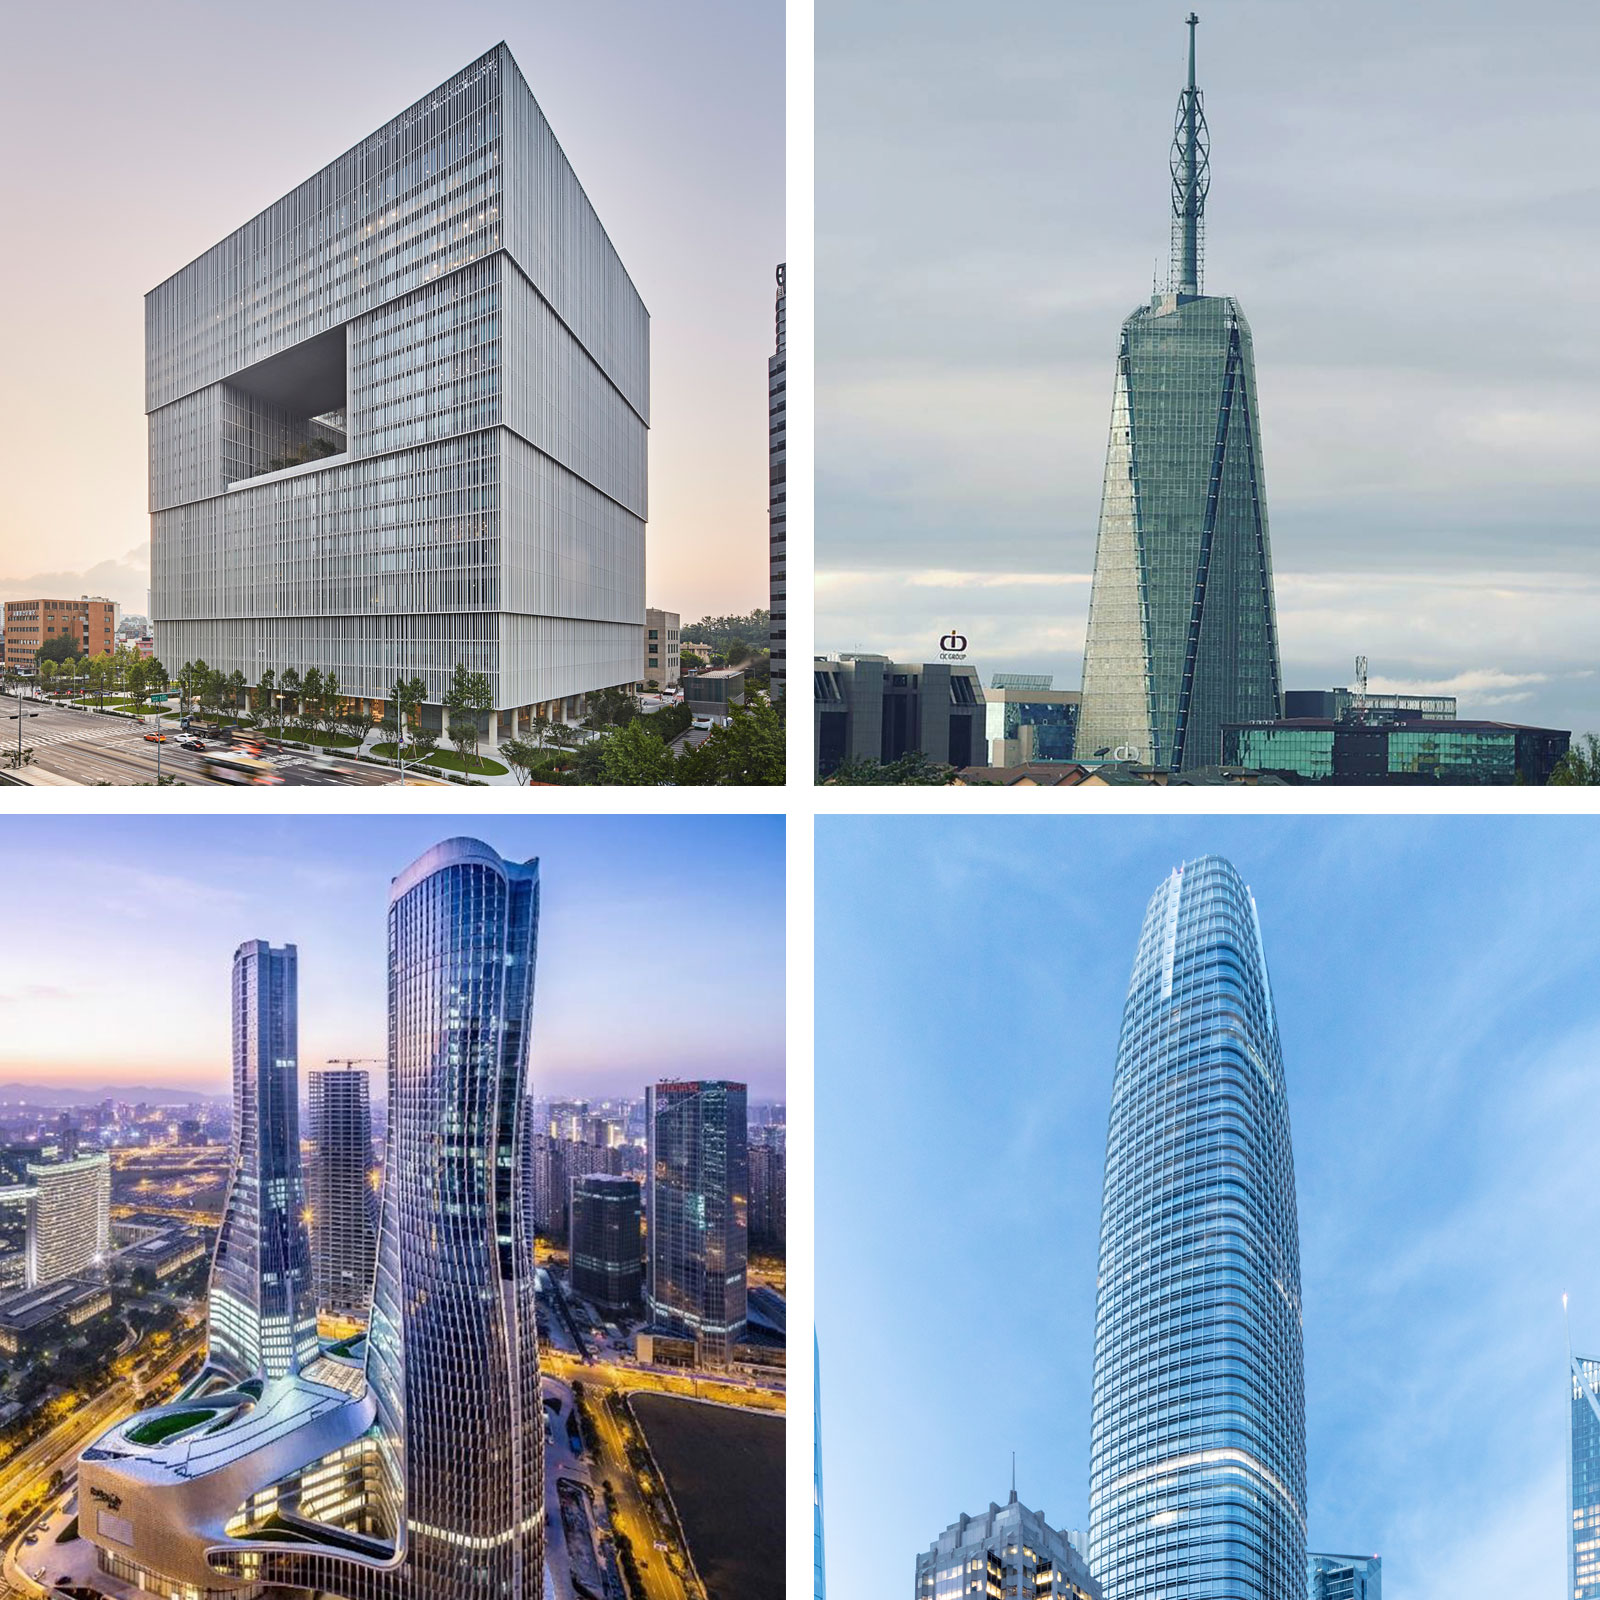 Amorepacific Headquarters - Seoul (top left), Britam Tower - Nairobi (top right), Raffles City Hangzhou - Hangzhou (bottom left), Salesforce Tower - San Francisco (bottom right).